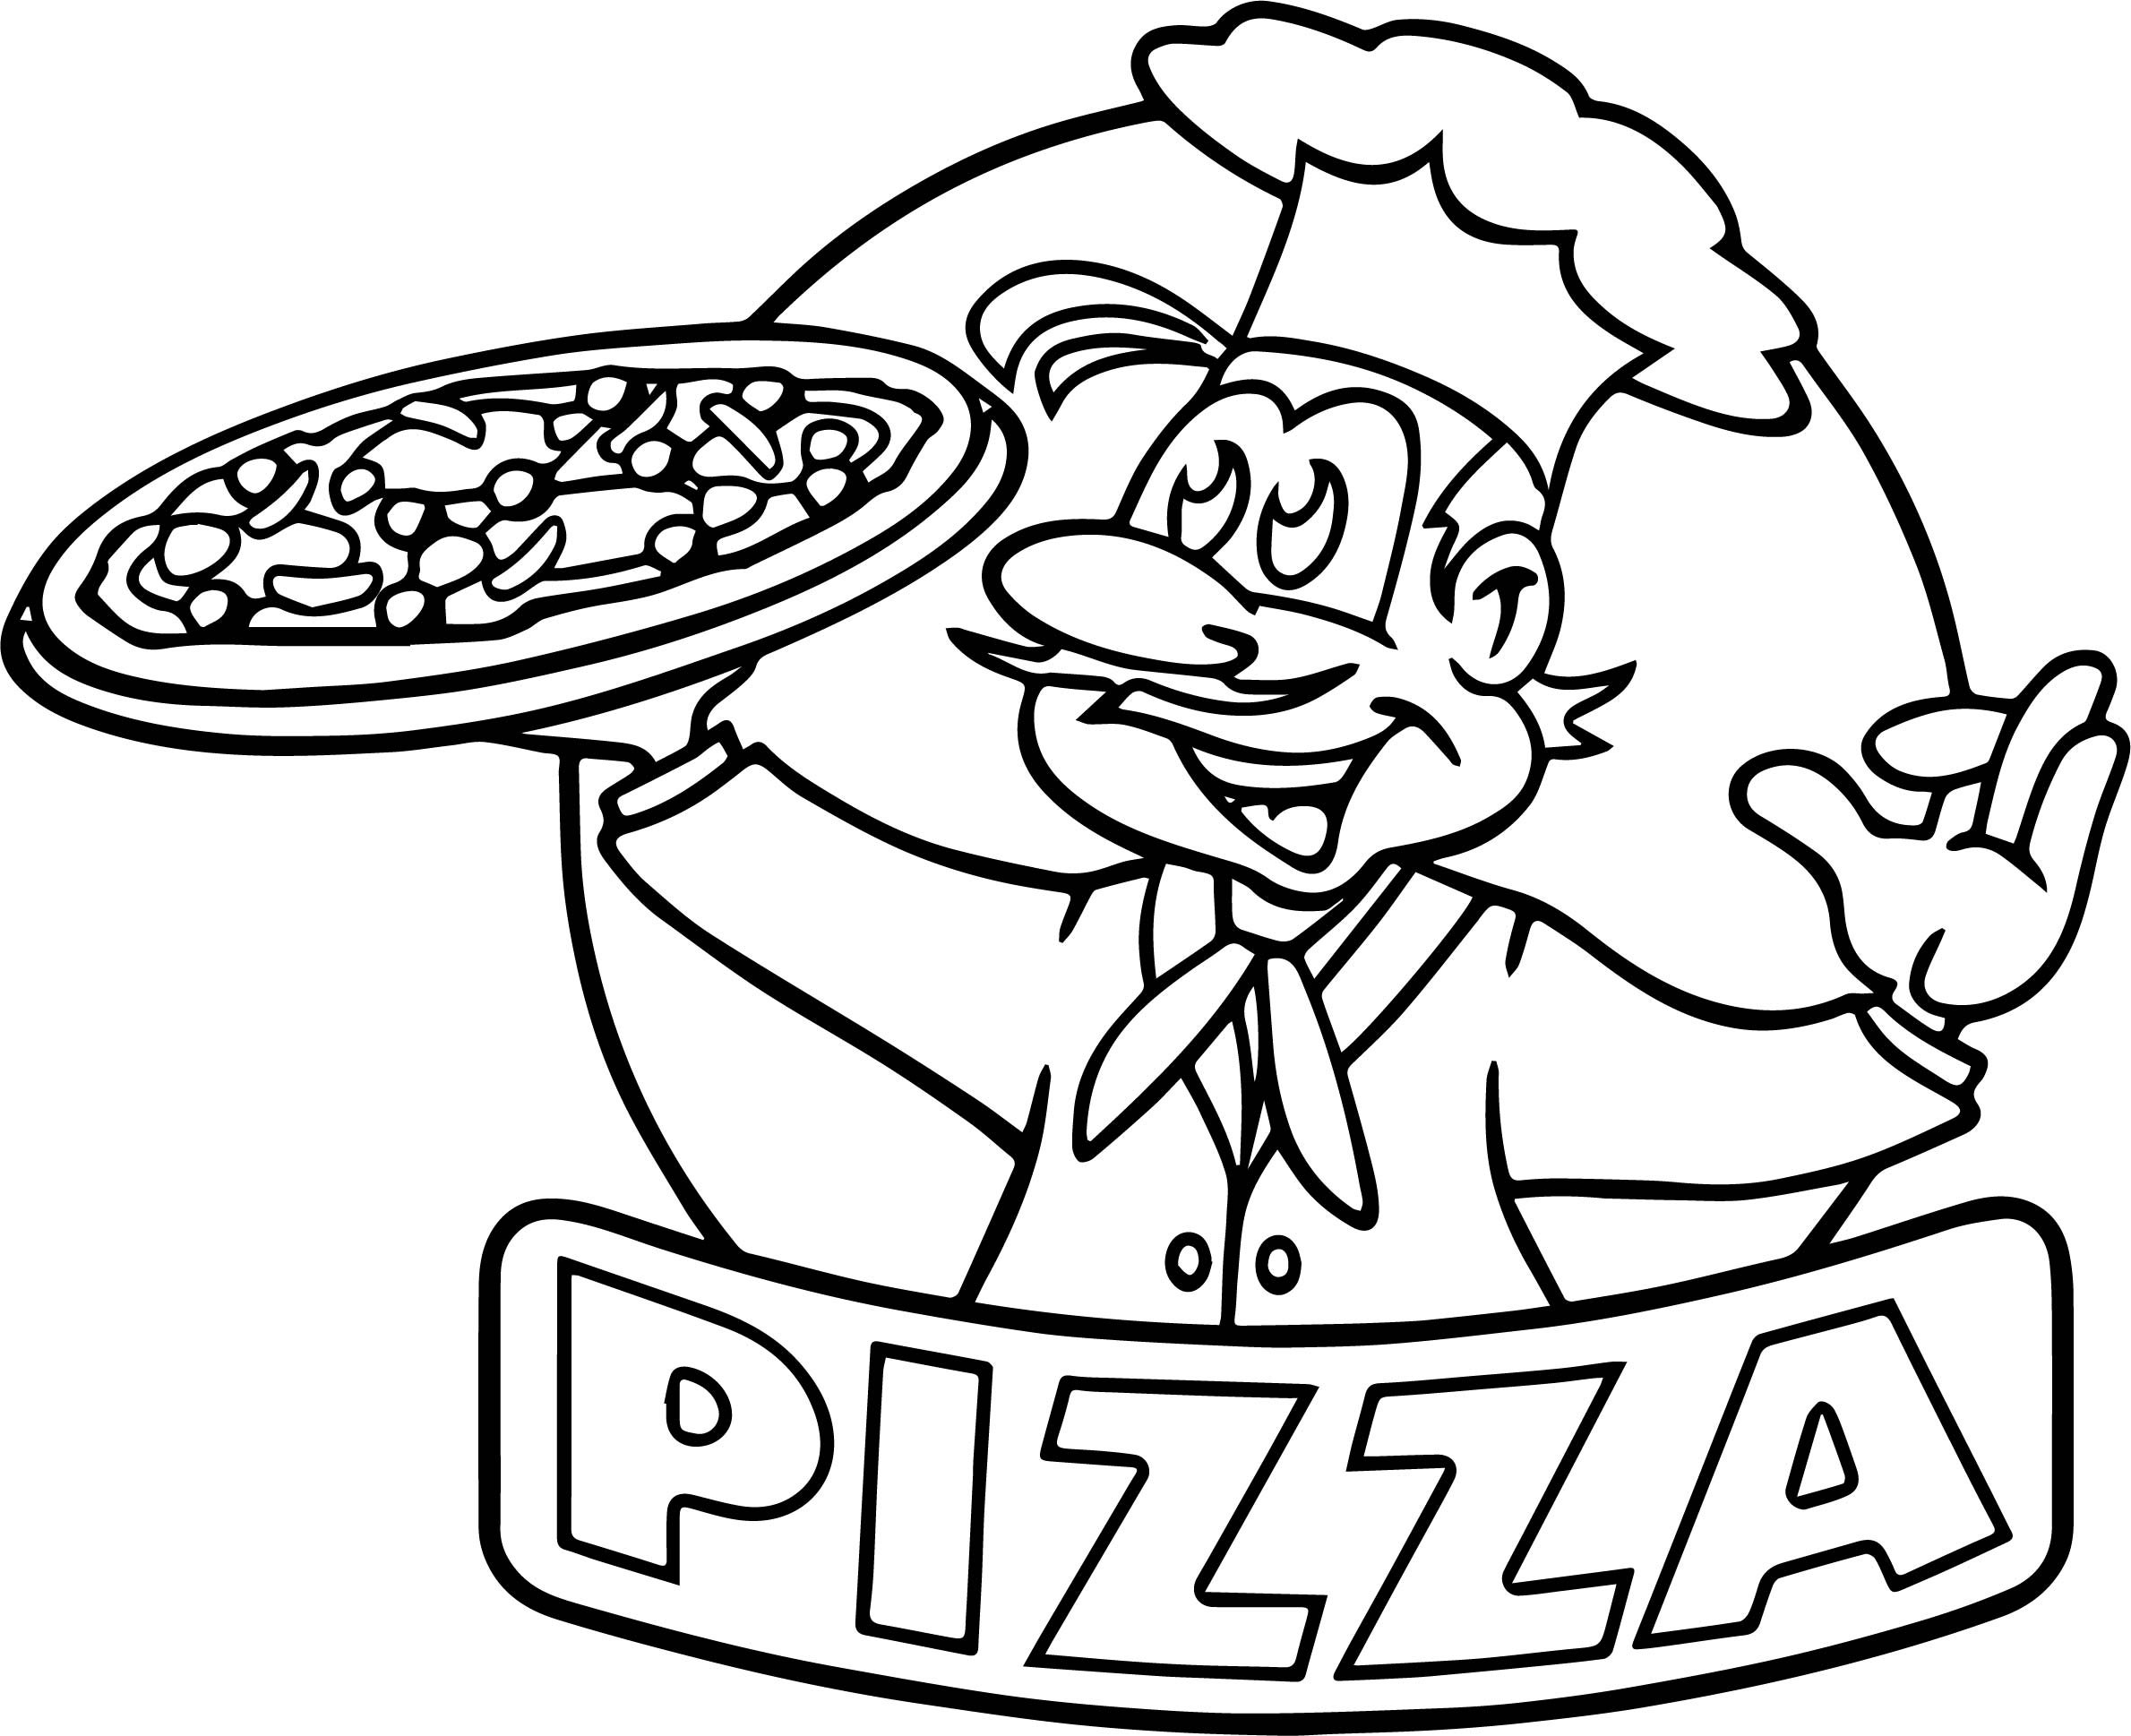 Pizza Drawing Images at GetDrawings.com | Free for personal use ...